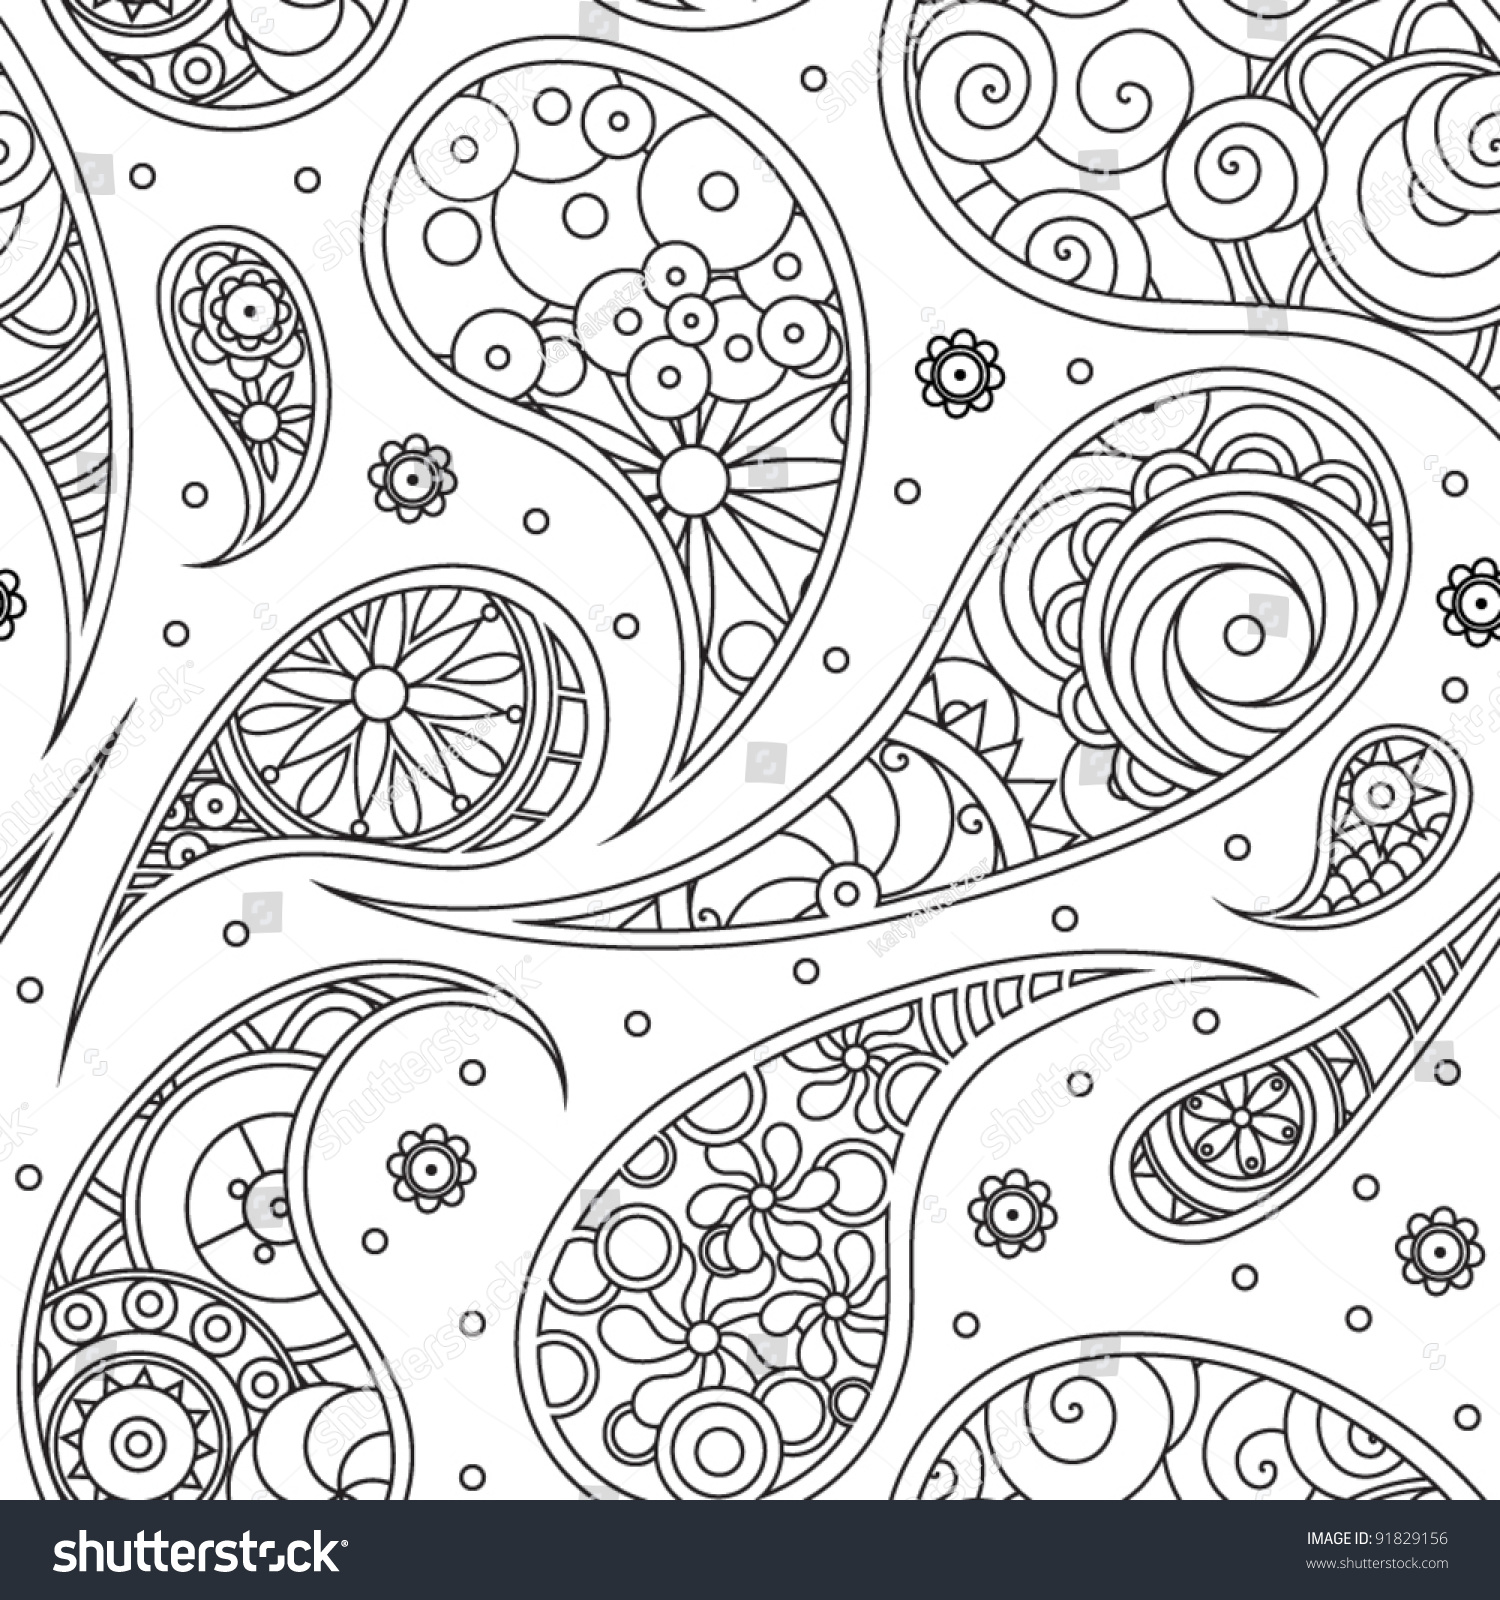 Black And White Paisley Pattern Stock Vector Illustration ...